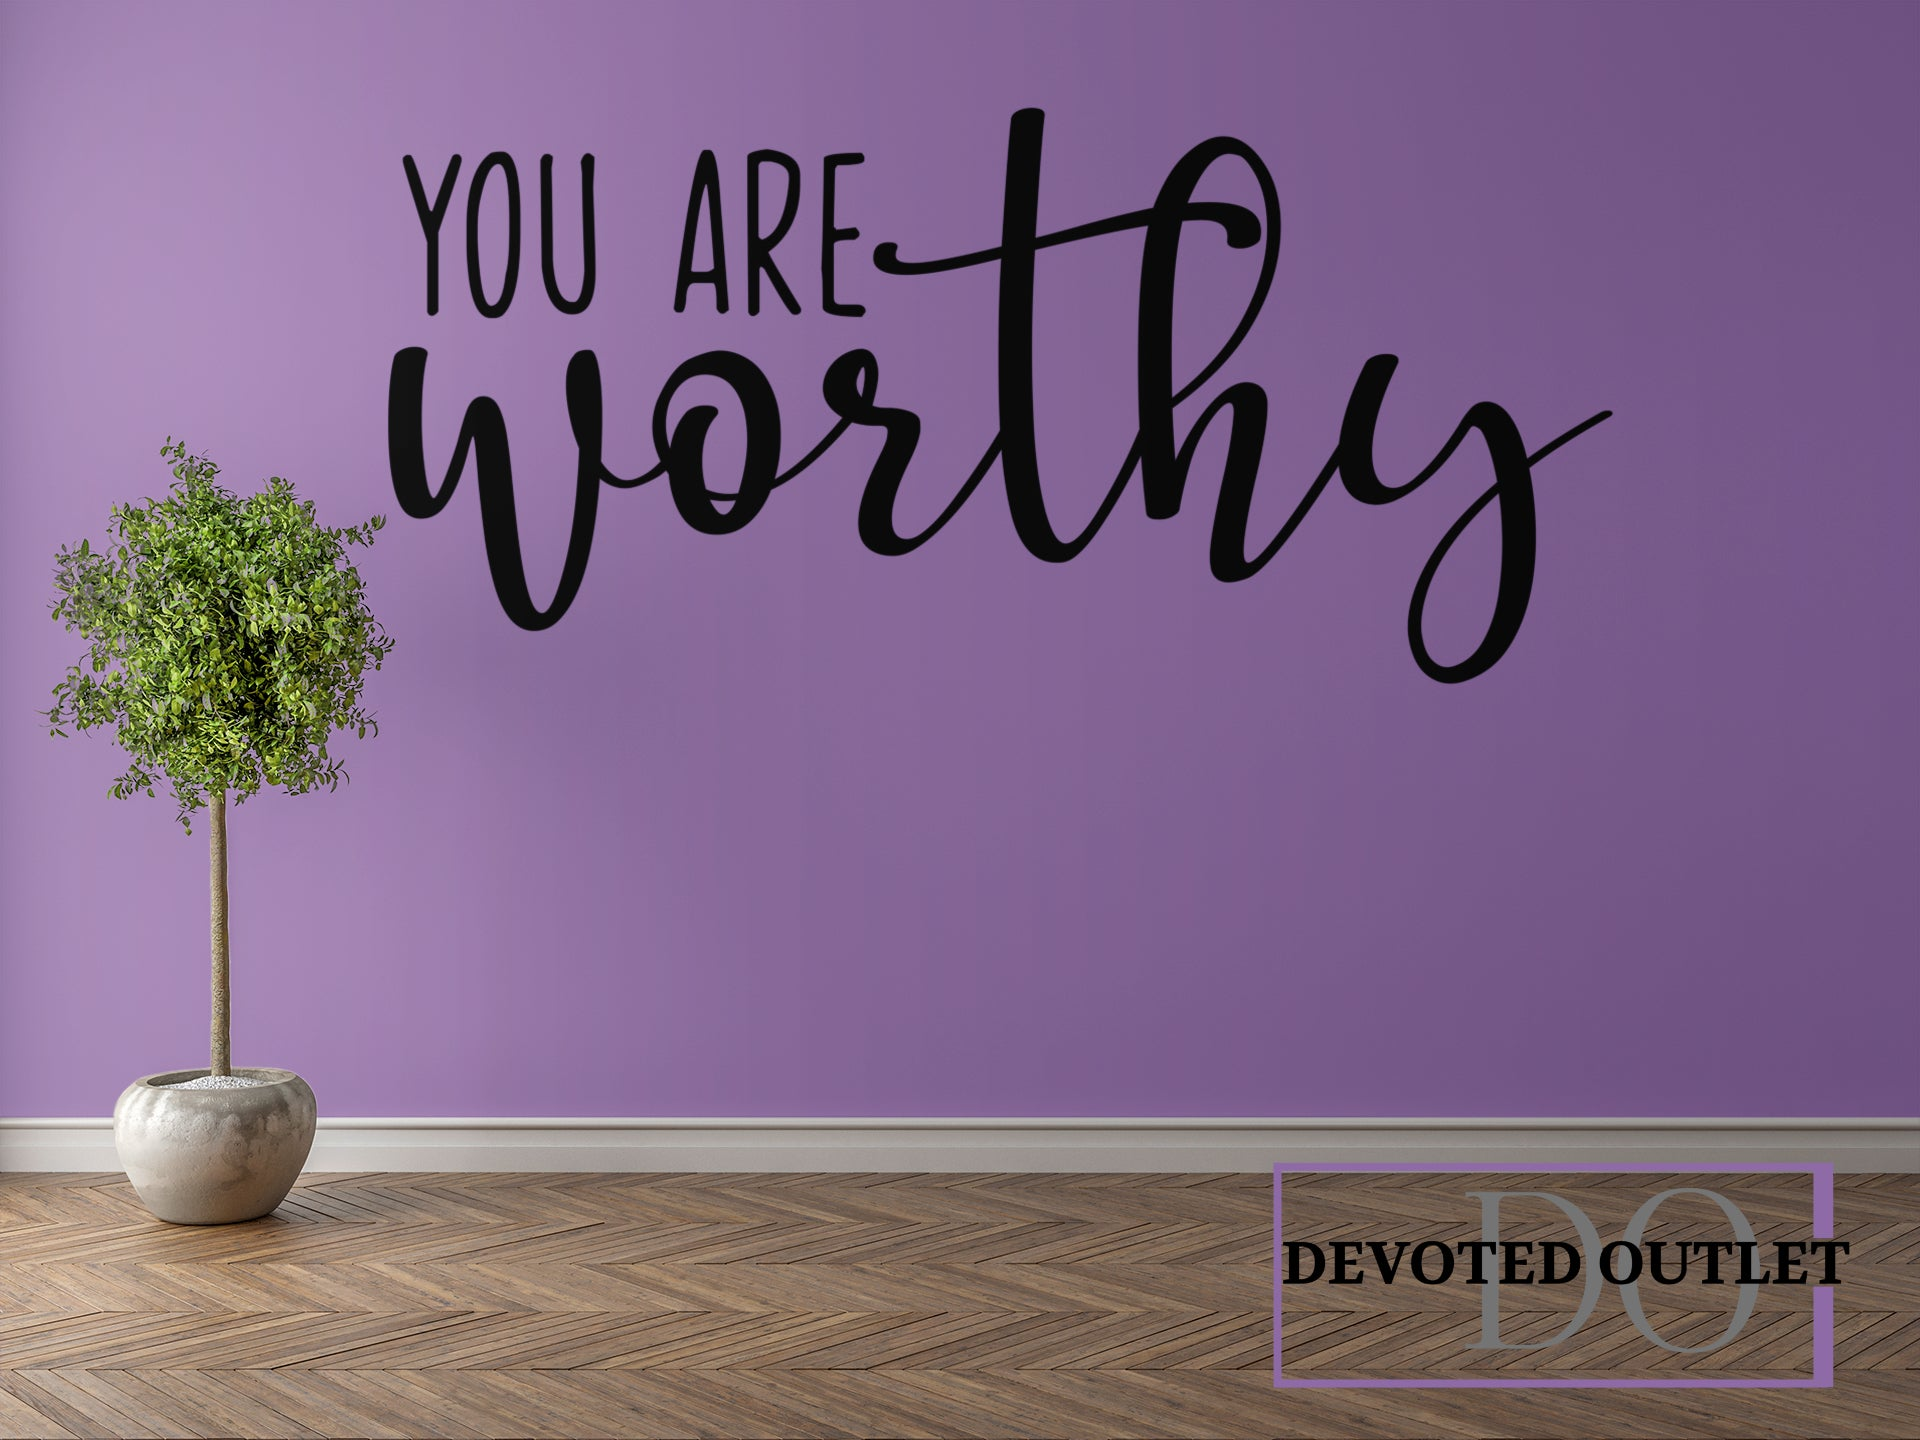 Devoted Outlet You Are Worthy Christian Liberty Blog Image 3